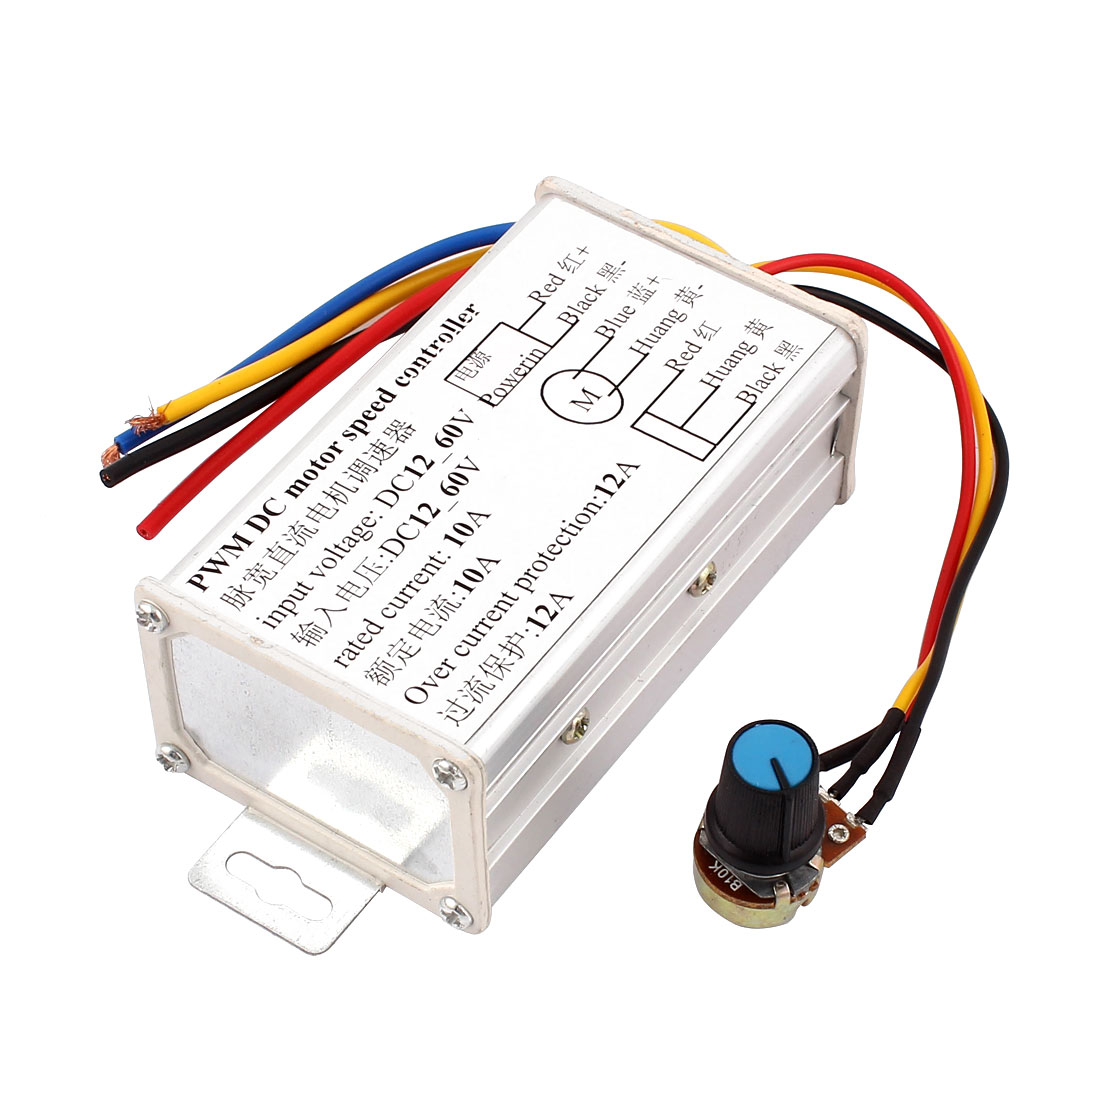 12V-60V 10A 600W Pulse Width Modulator PWM DC Motor Speed Controller Switch